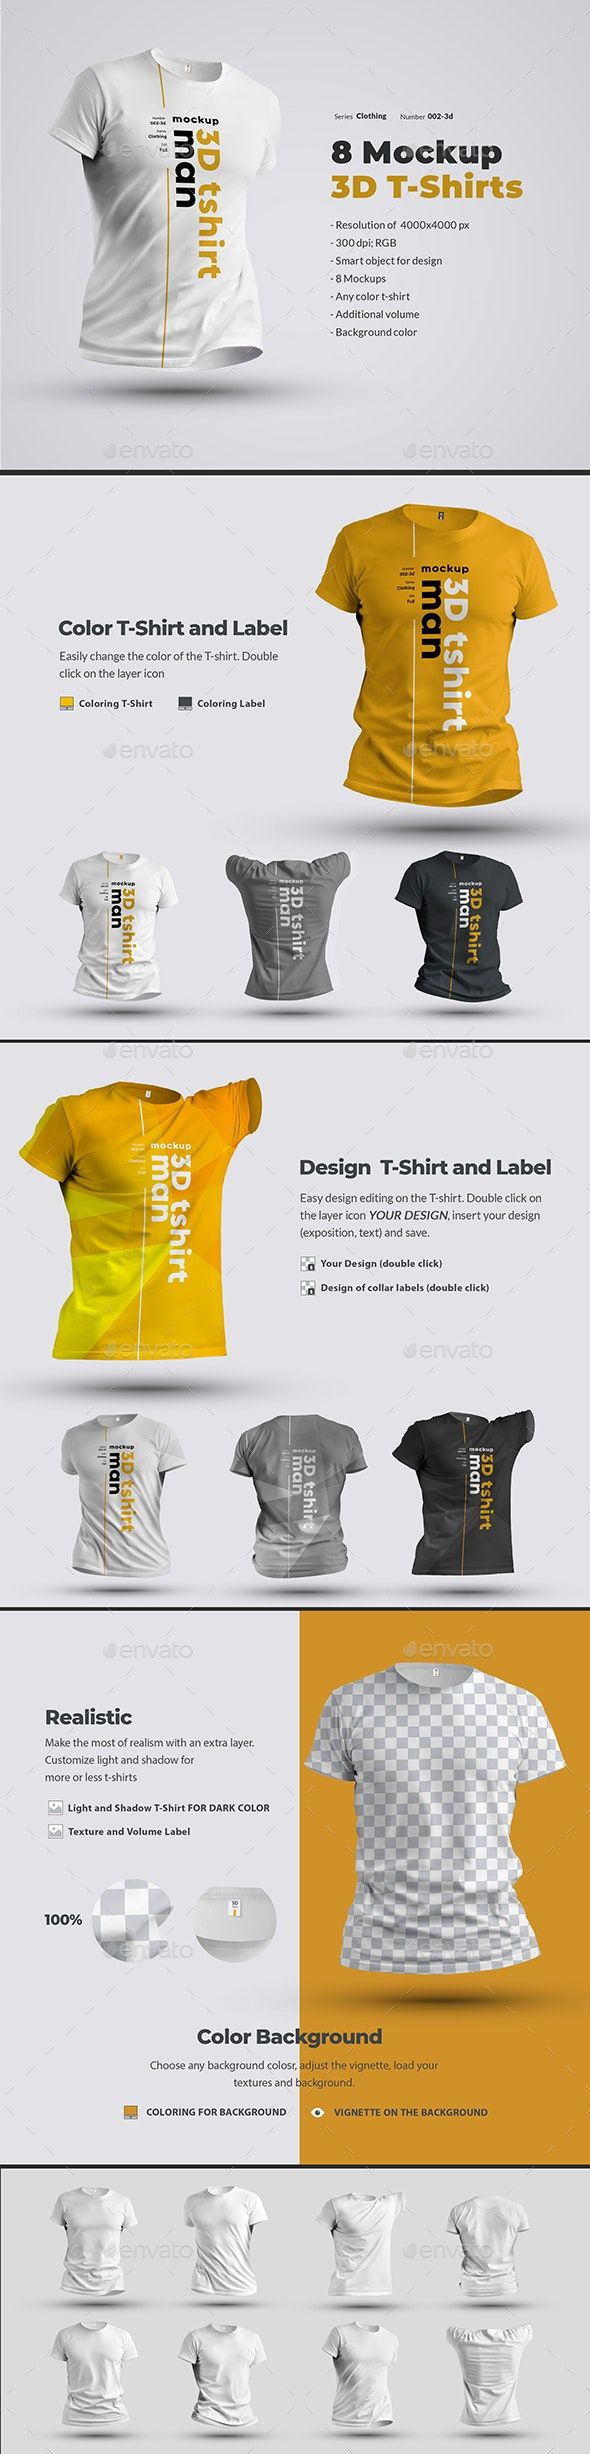 Download 8 Mockups T Shirts 3d Man In 2020 Clothing Mockup 3d T Shirts Shirt Mockup